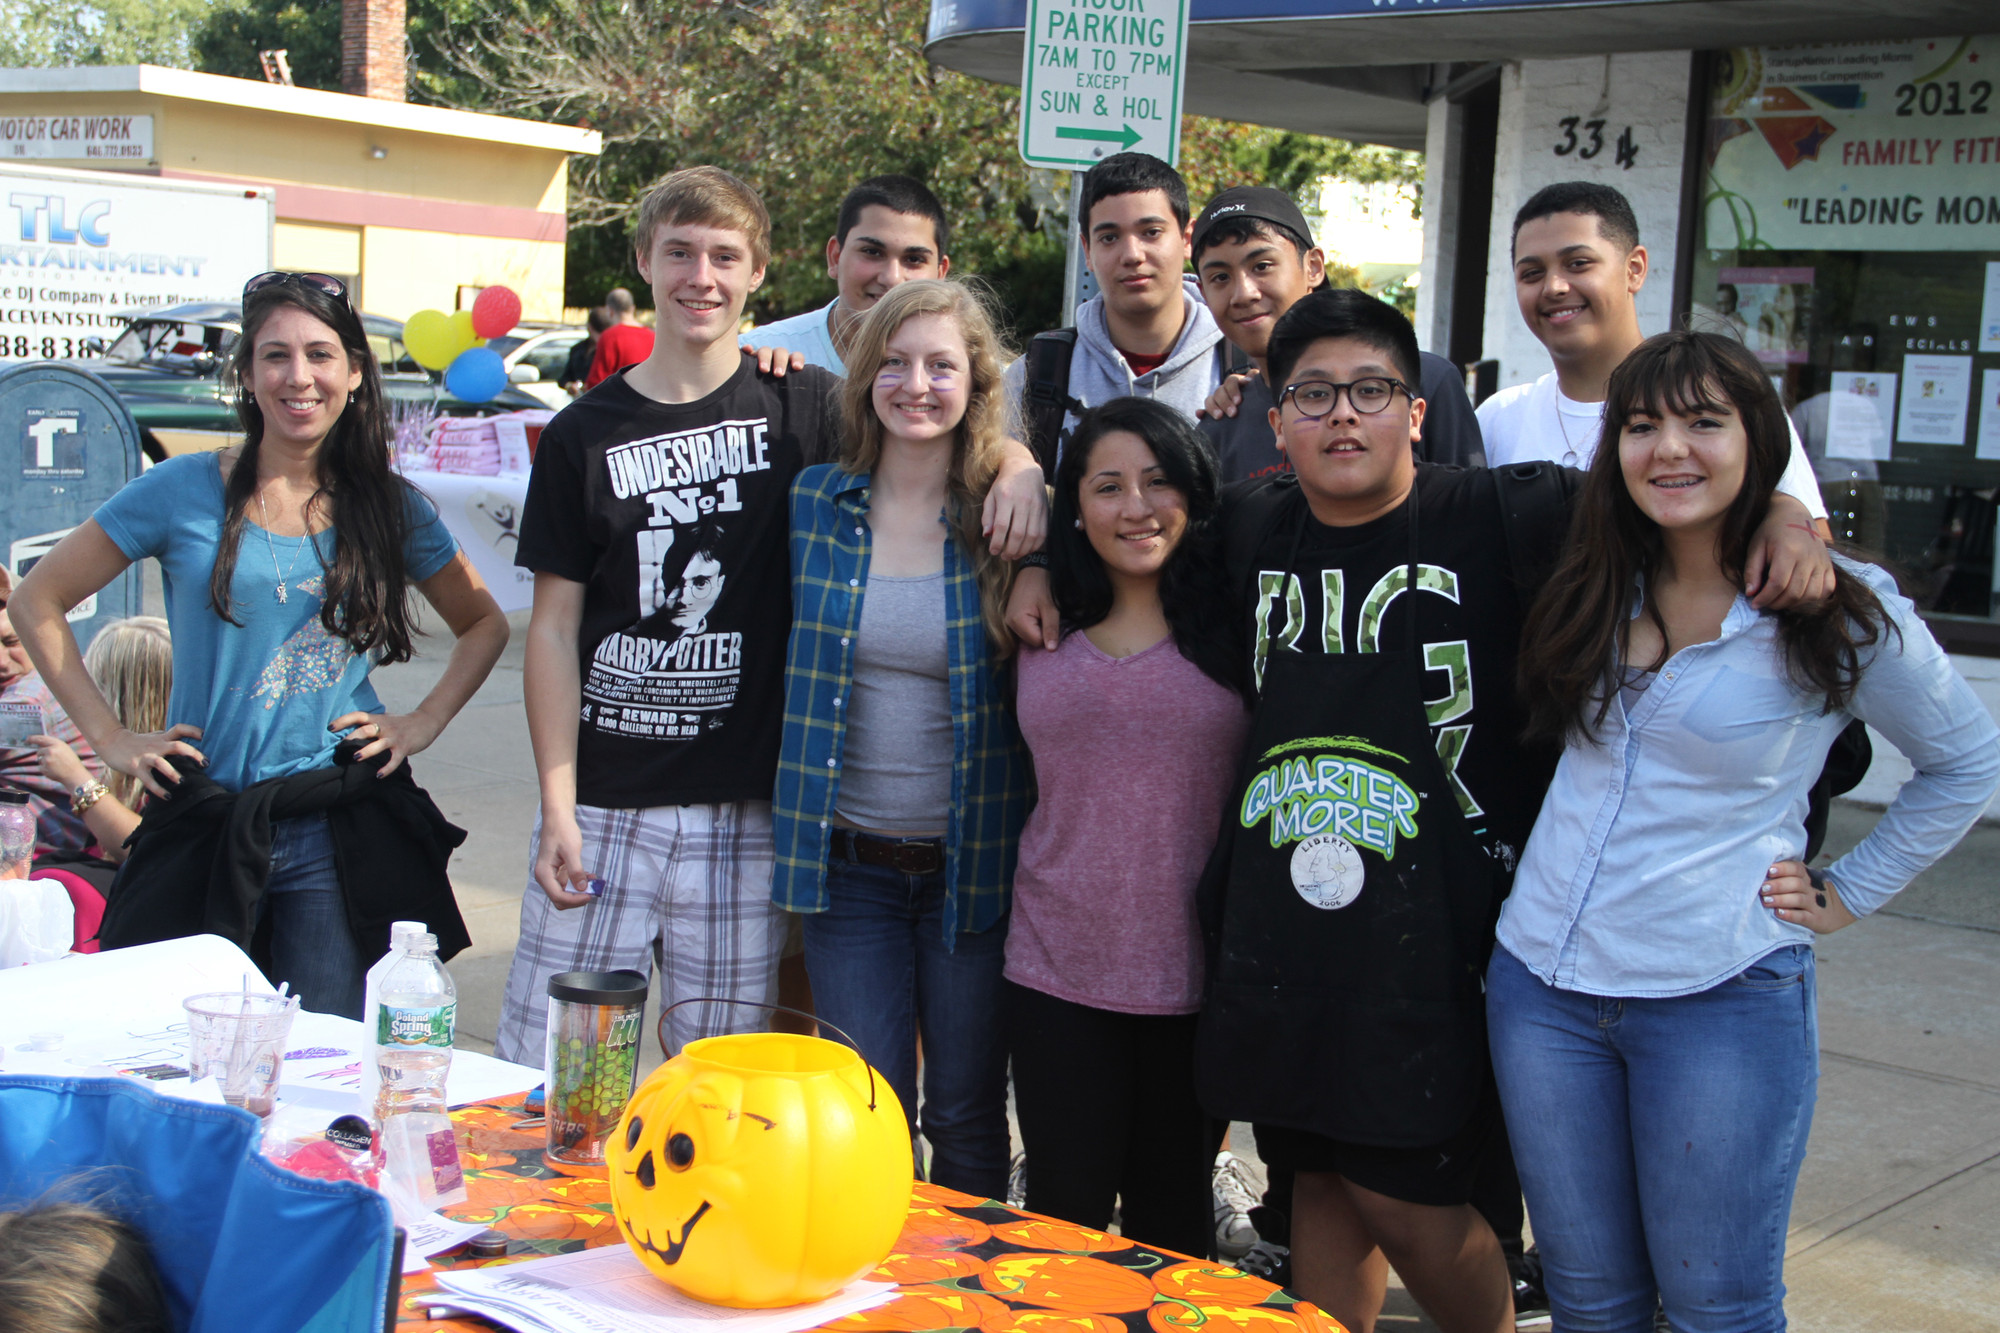 WHHS Art teacher and advisor Cassie Ross with members of the National Art Honor Society took their talents to the street during the Chamber of Commerce Street Fair.